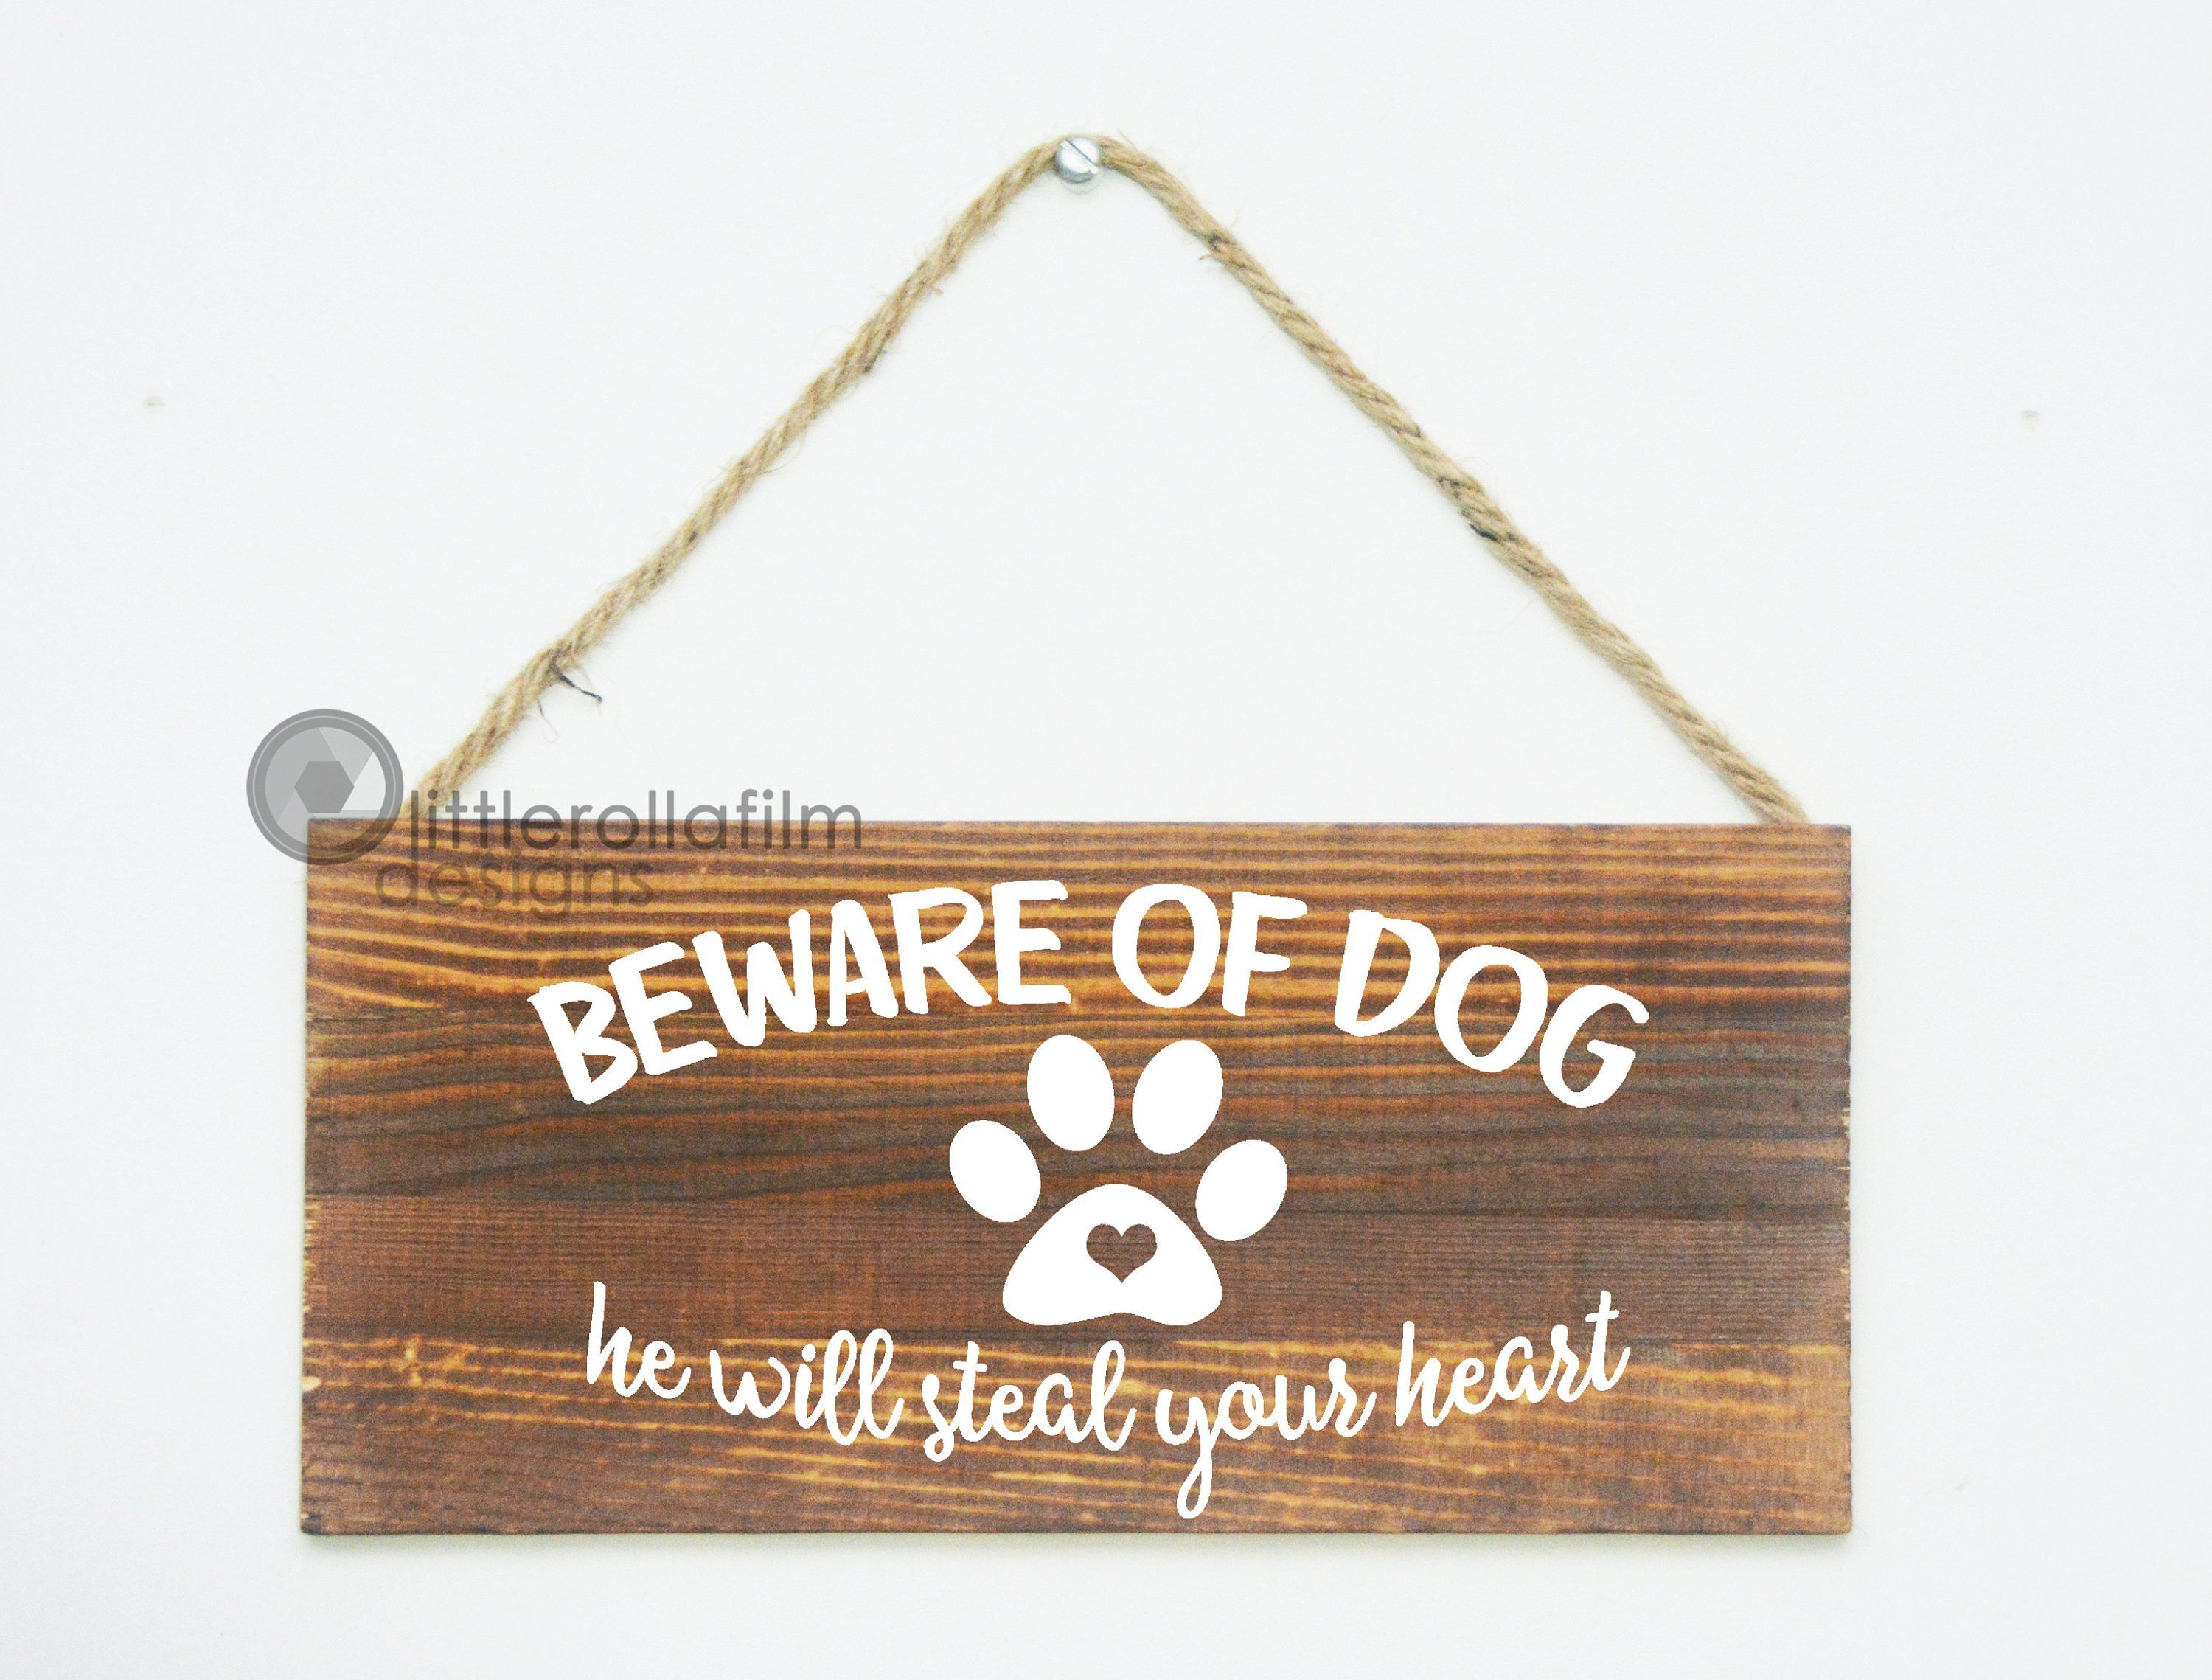 Beware Of Dog Sign 12 X5 1 2 Wood Plaque Pet Home Decor Gift For Her Gift For Him Rustic Decor By Littlerollafi Dog Signs Rustic Decor Just Because Gifts